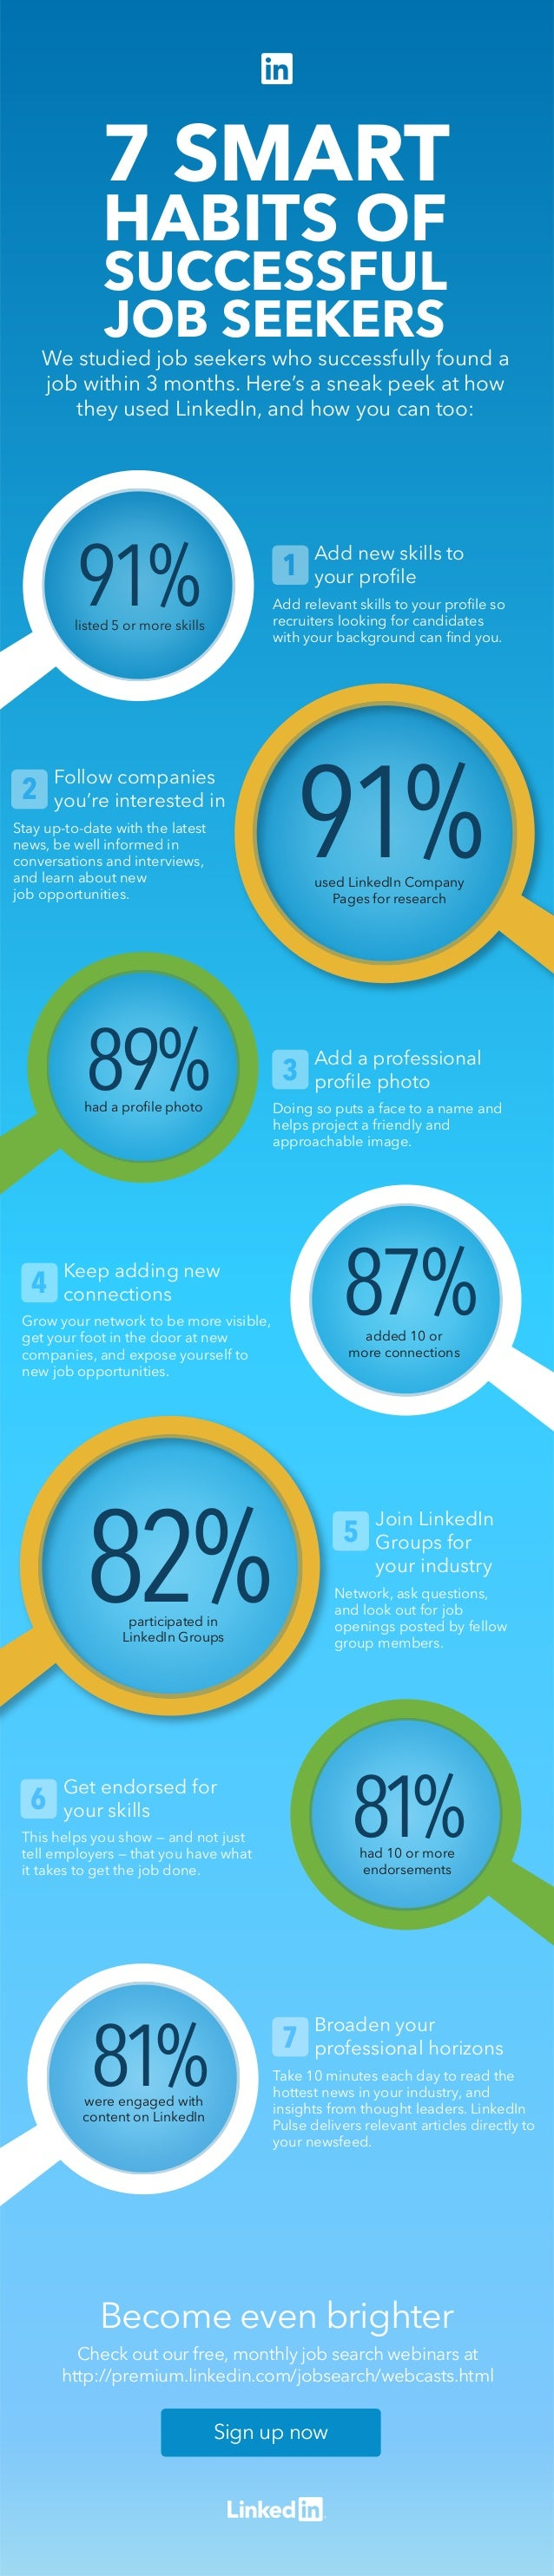 We studied job seekers who successfully found a job within 3 months. Here's a sneak peek at how they used LinkedIn, and ho...